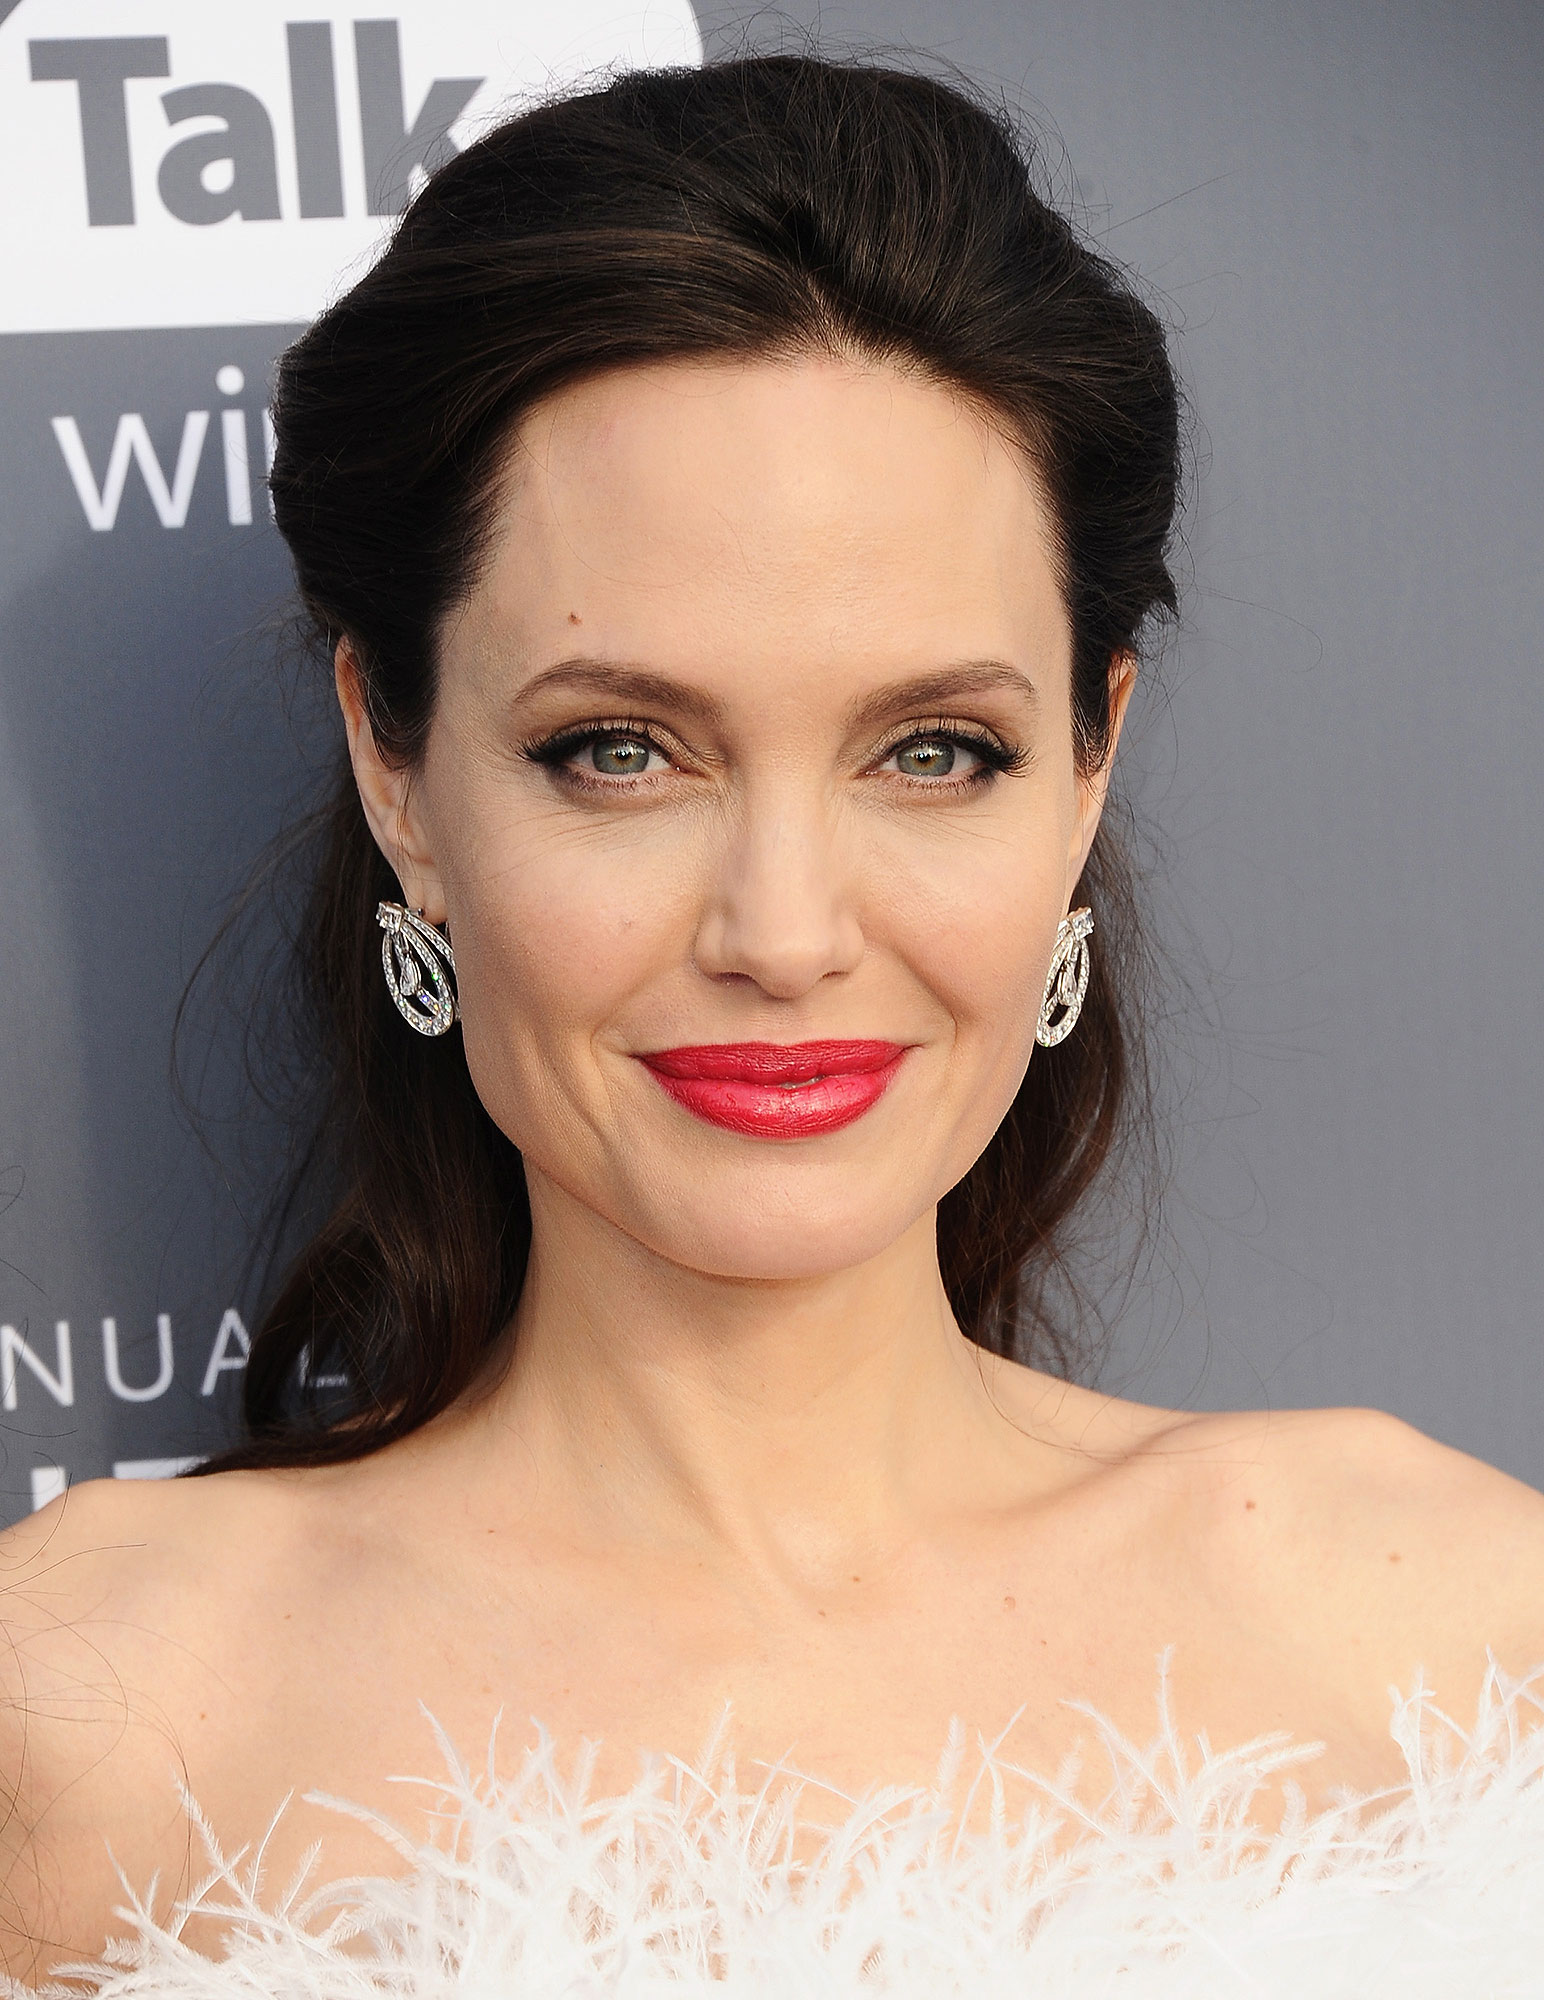 Wondrous Angelina Jolie Hairstyles You Could Apply To Your Hair